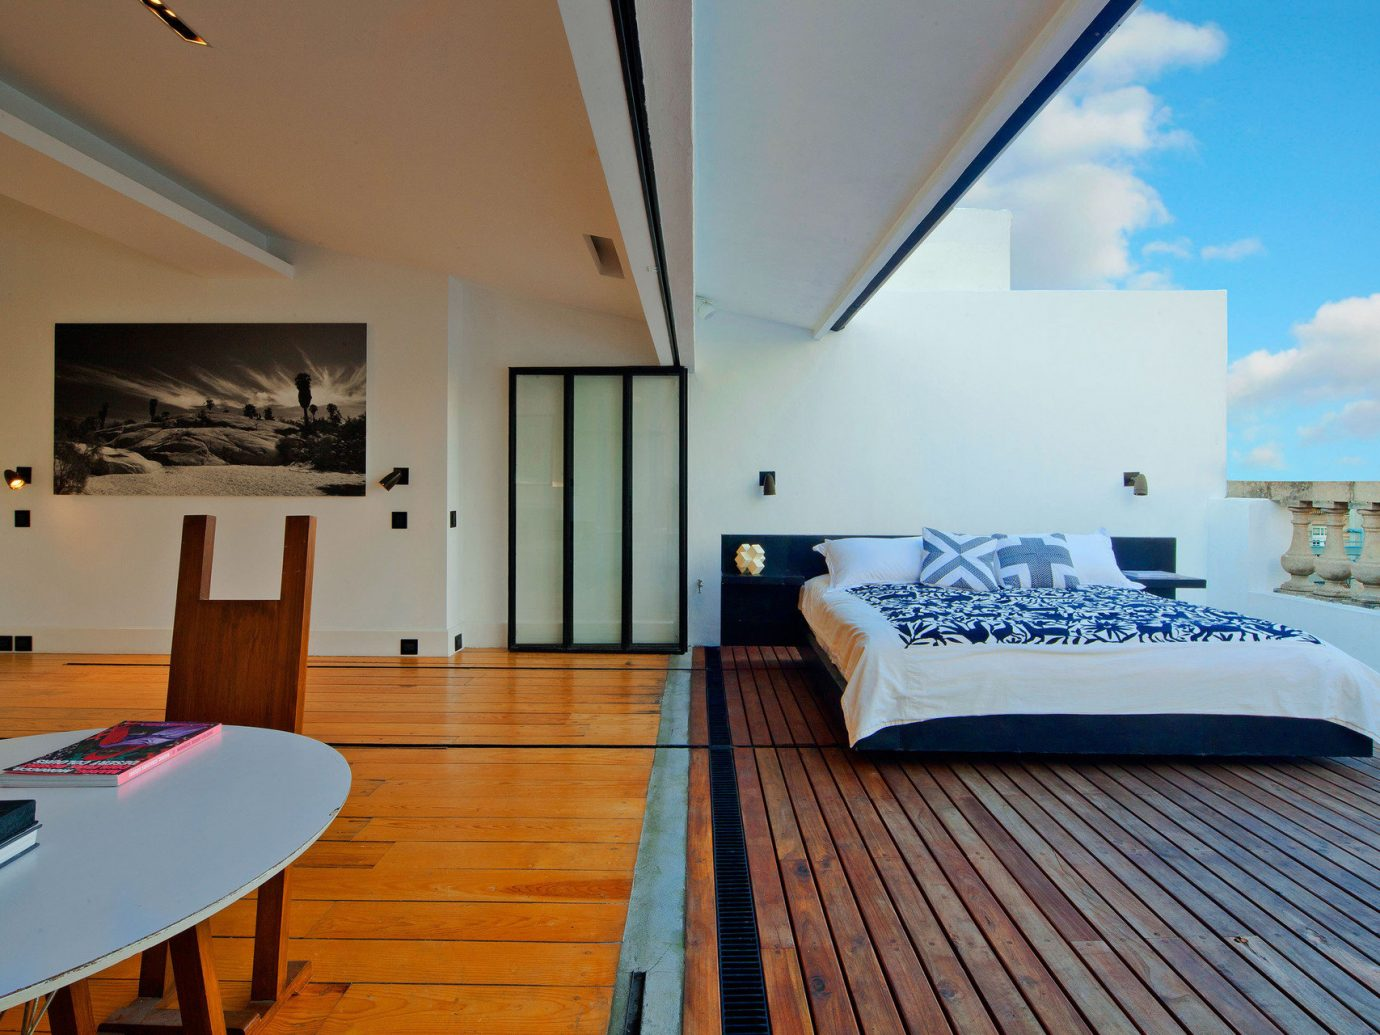 Balcony bed Bedroom Boutique Hotels Luxury Modern open-air Outdoors Patio regal sophisticated Terrace view indoor floor wall room property estate real estate Suite interior design Villa cottage Design living room apartment furniture condominium decorated